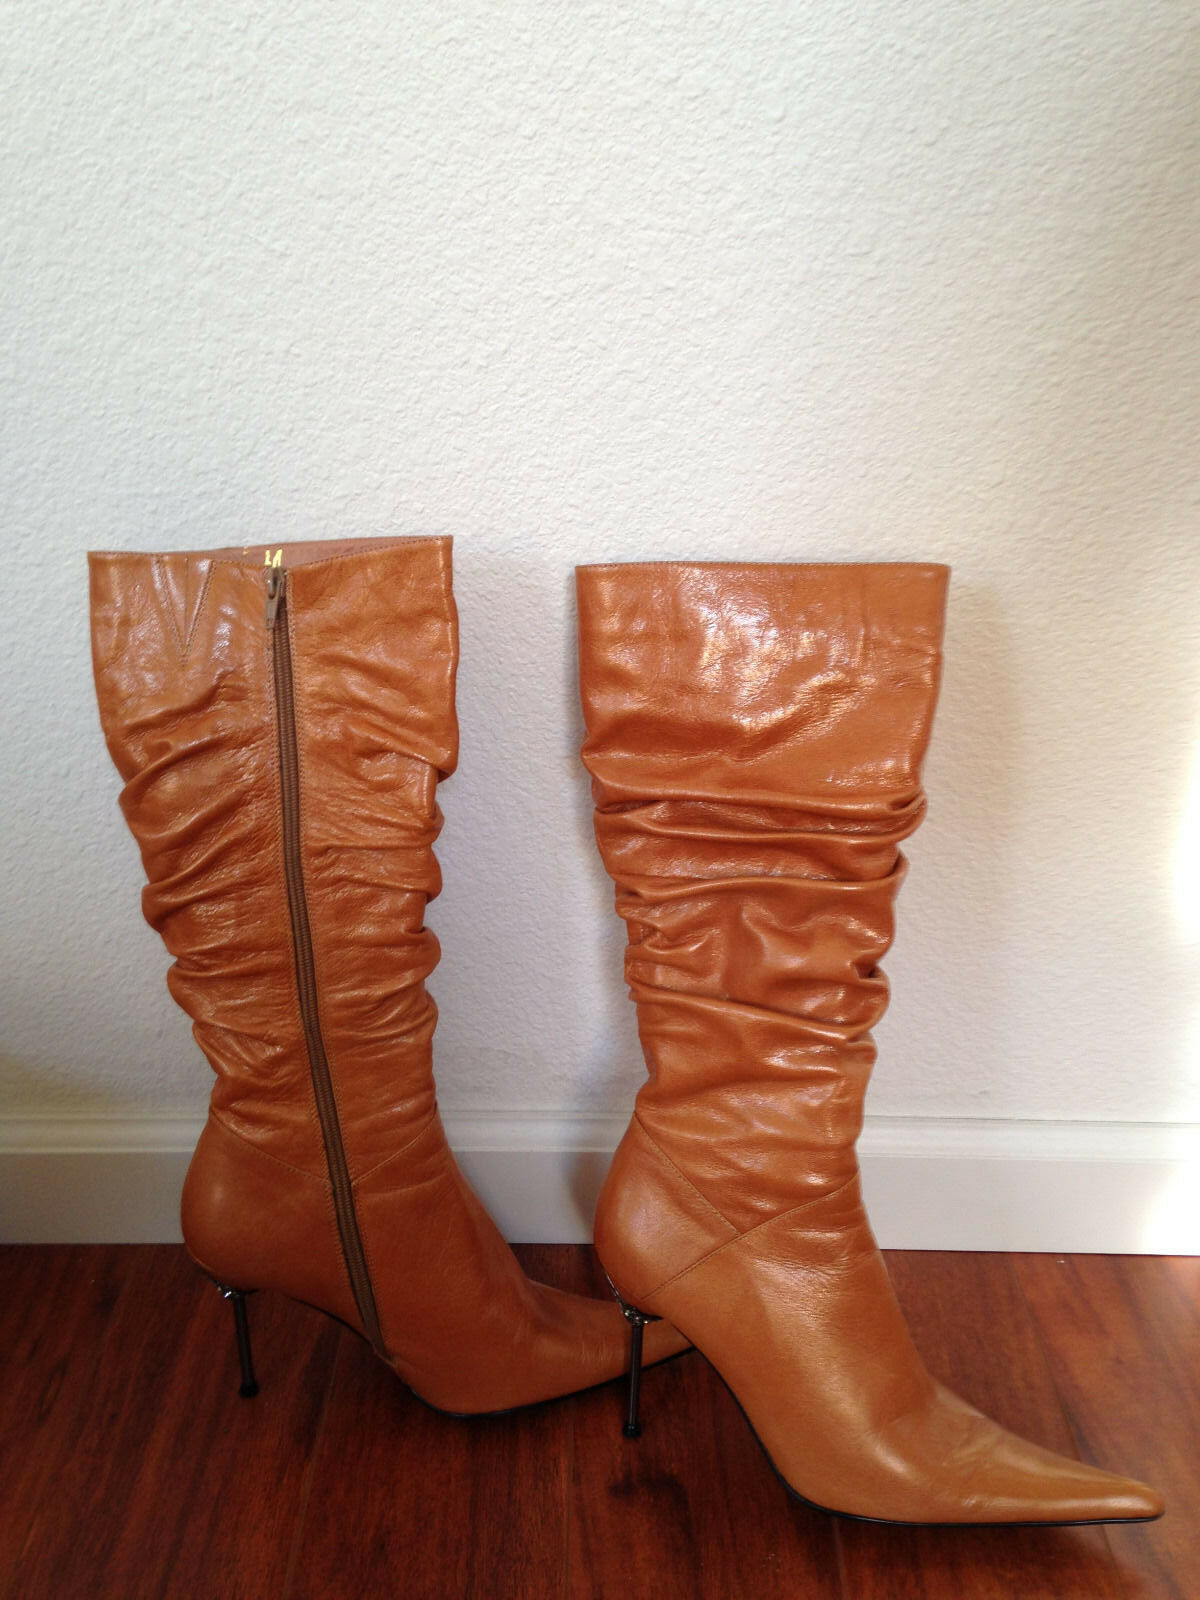 women boot, High hills boot, Fancy boot, High boots, Leather boot, Marciano boot